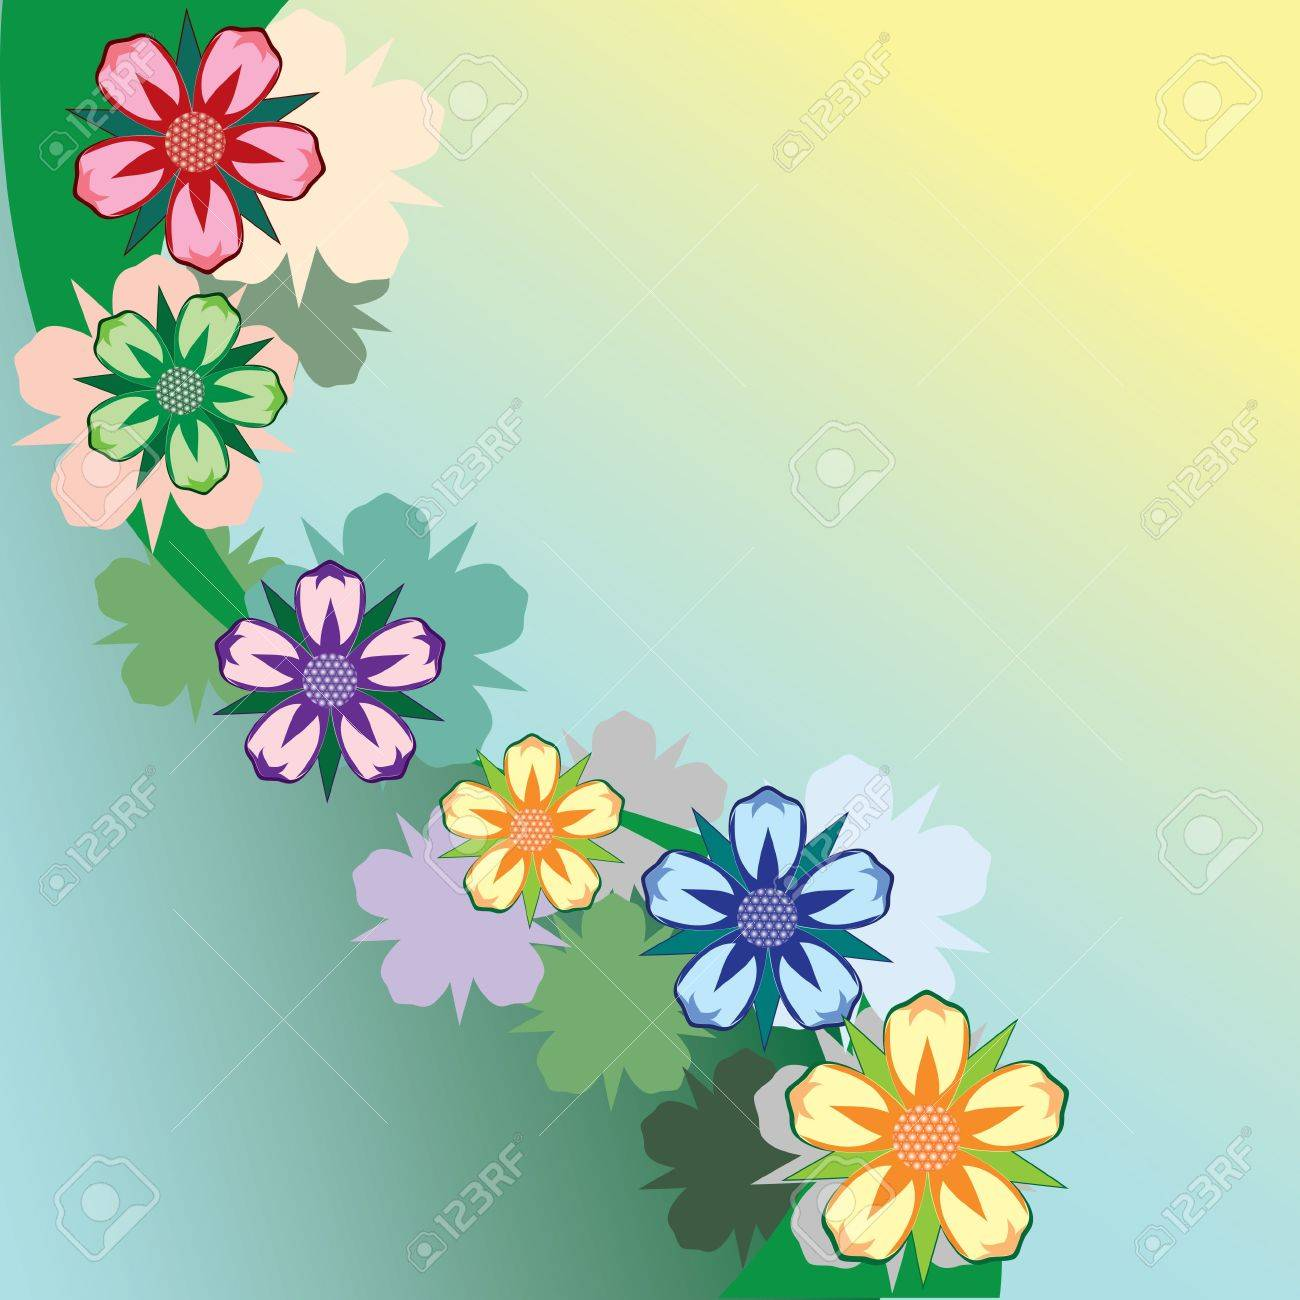 Abstract floral background. Stock Vector - 6644250